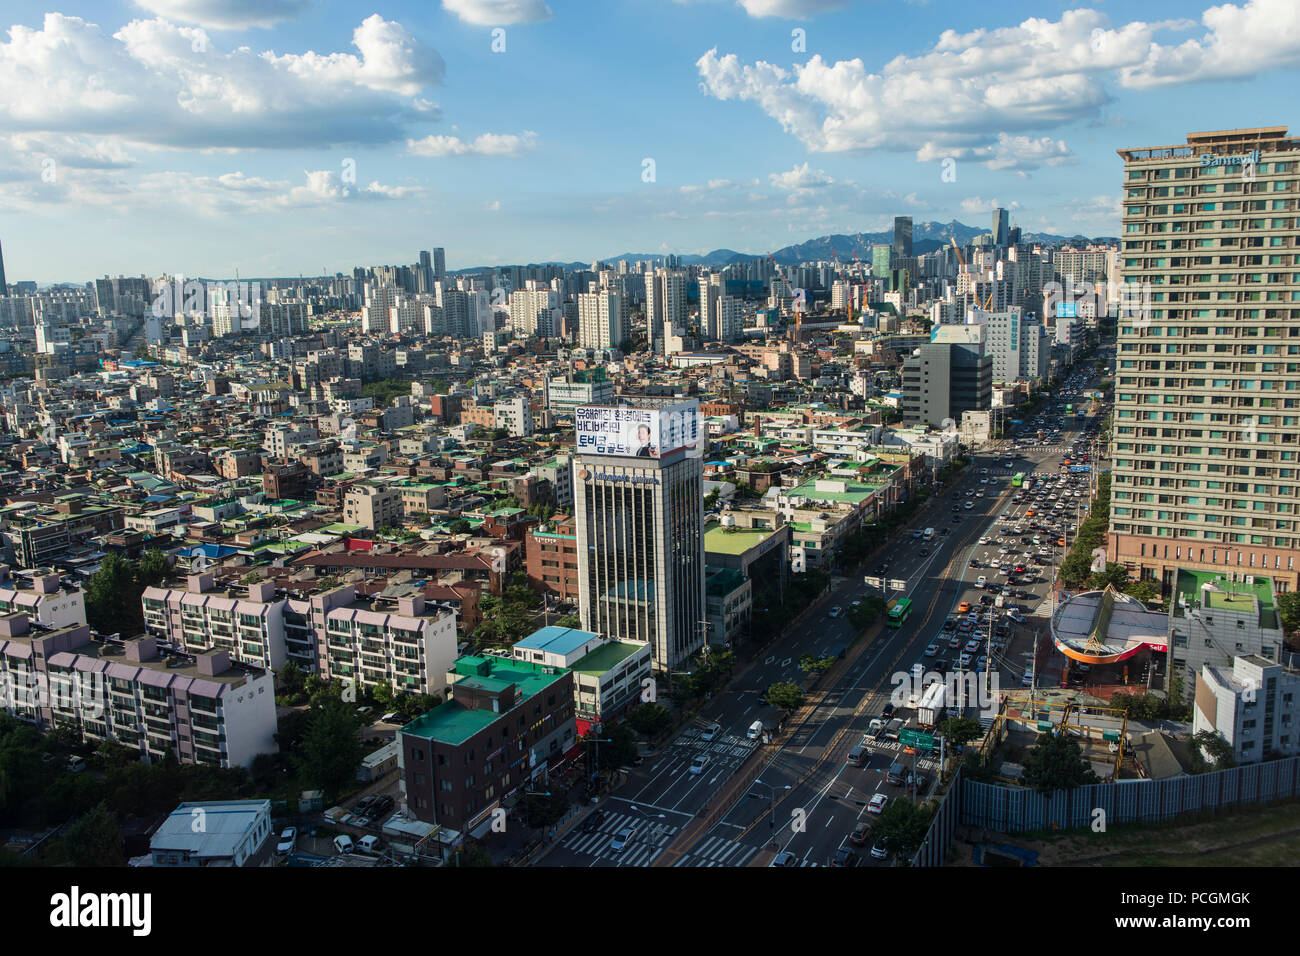 Busy city, Seoul, Korea 2018 - Stock Image